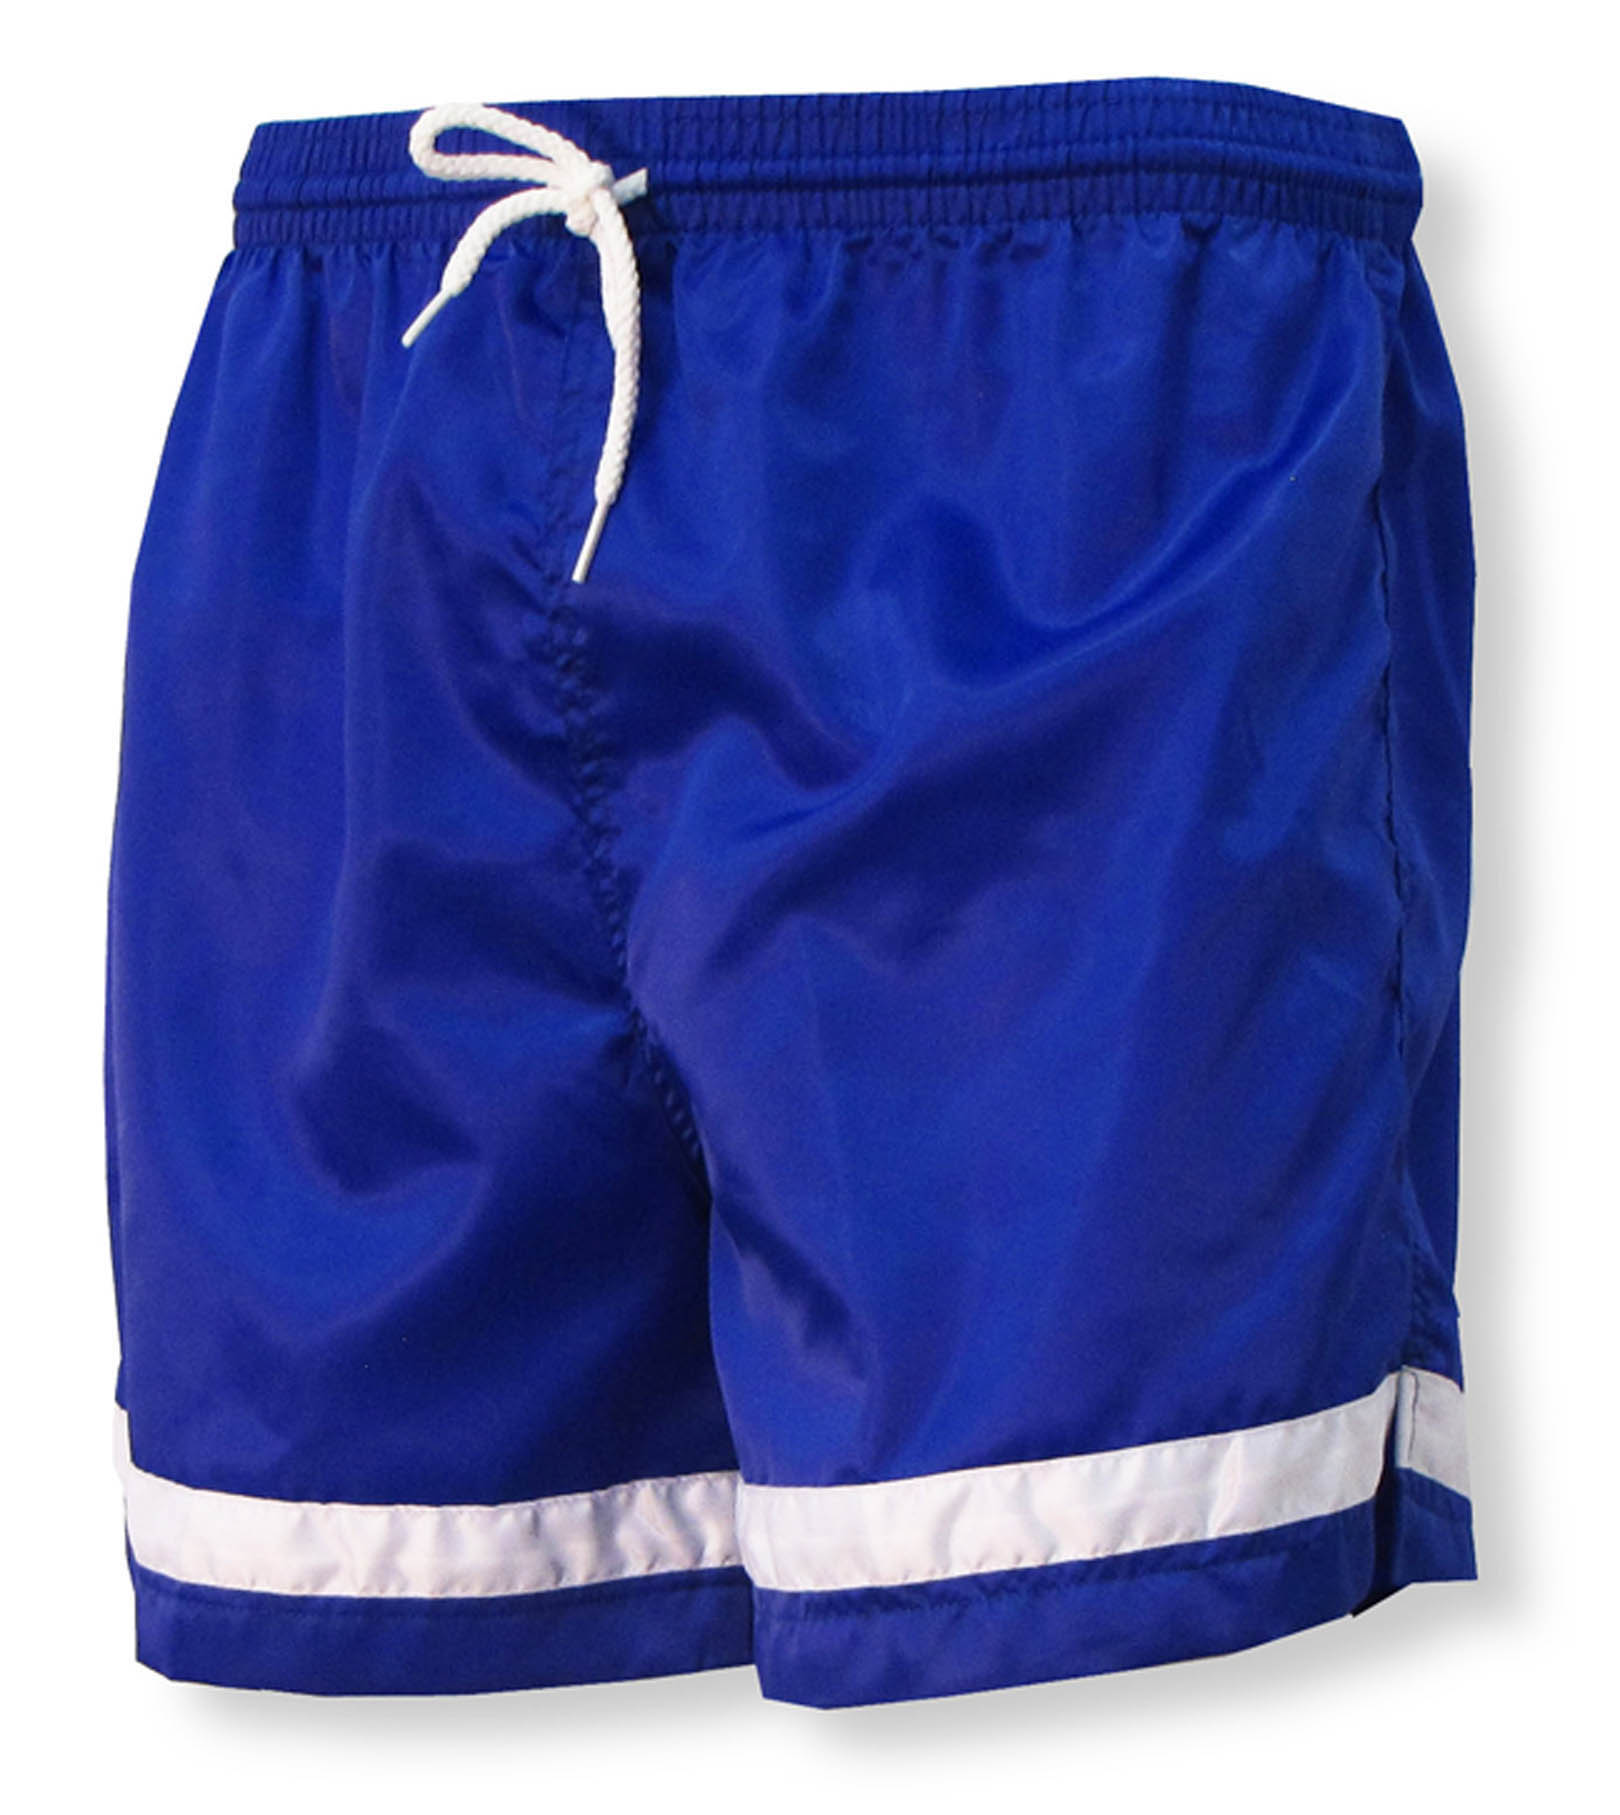 Vashon soccer nylon shorts in royal/white by Code Four Athletics